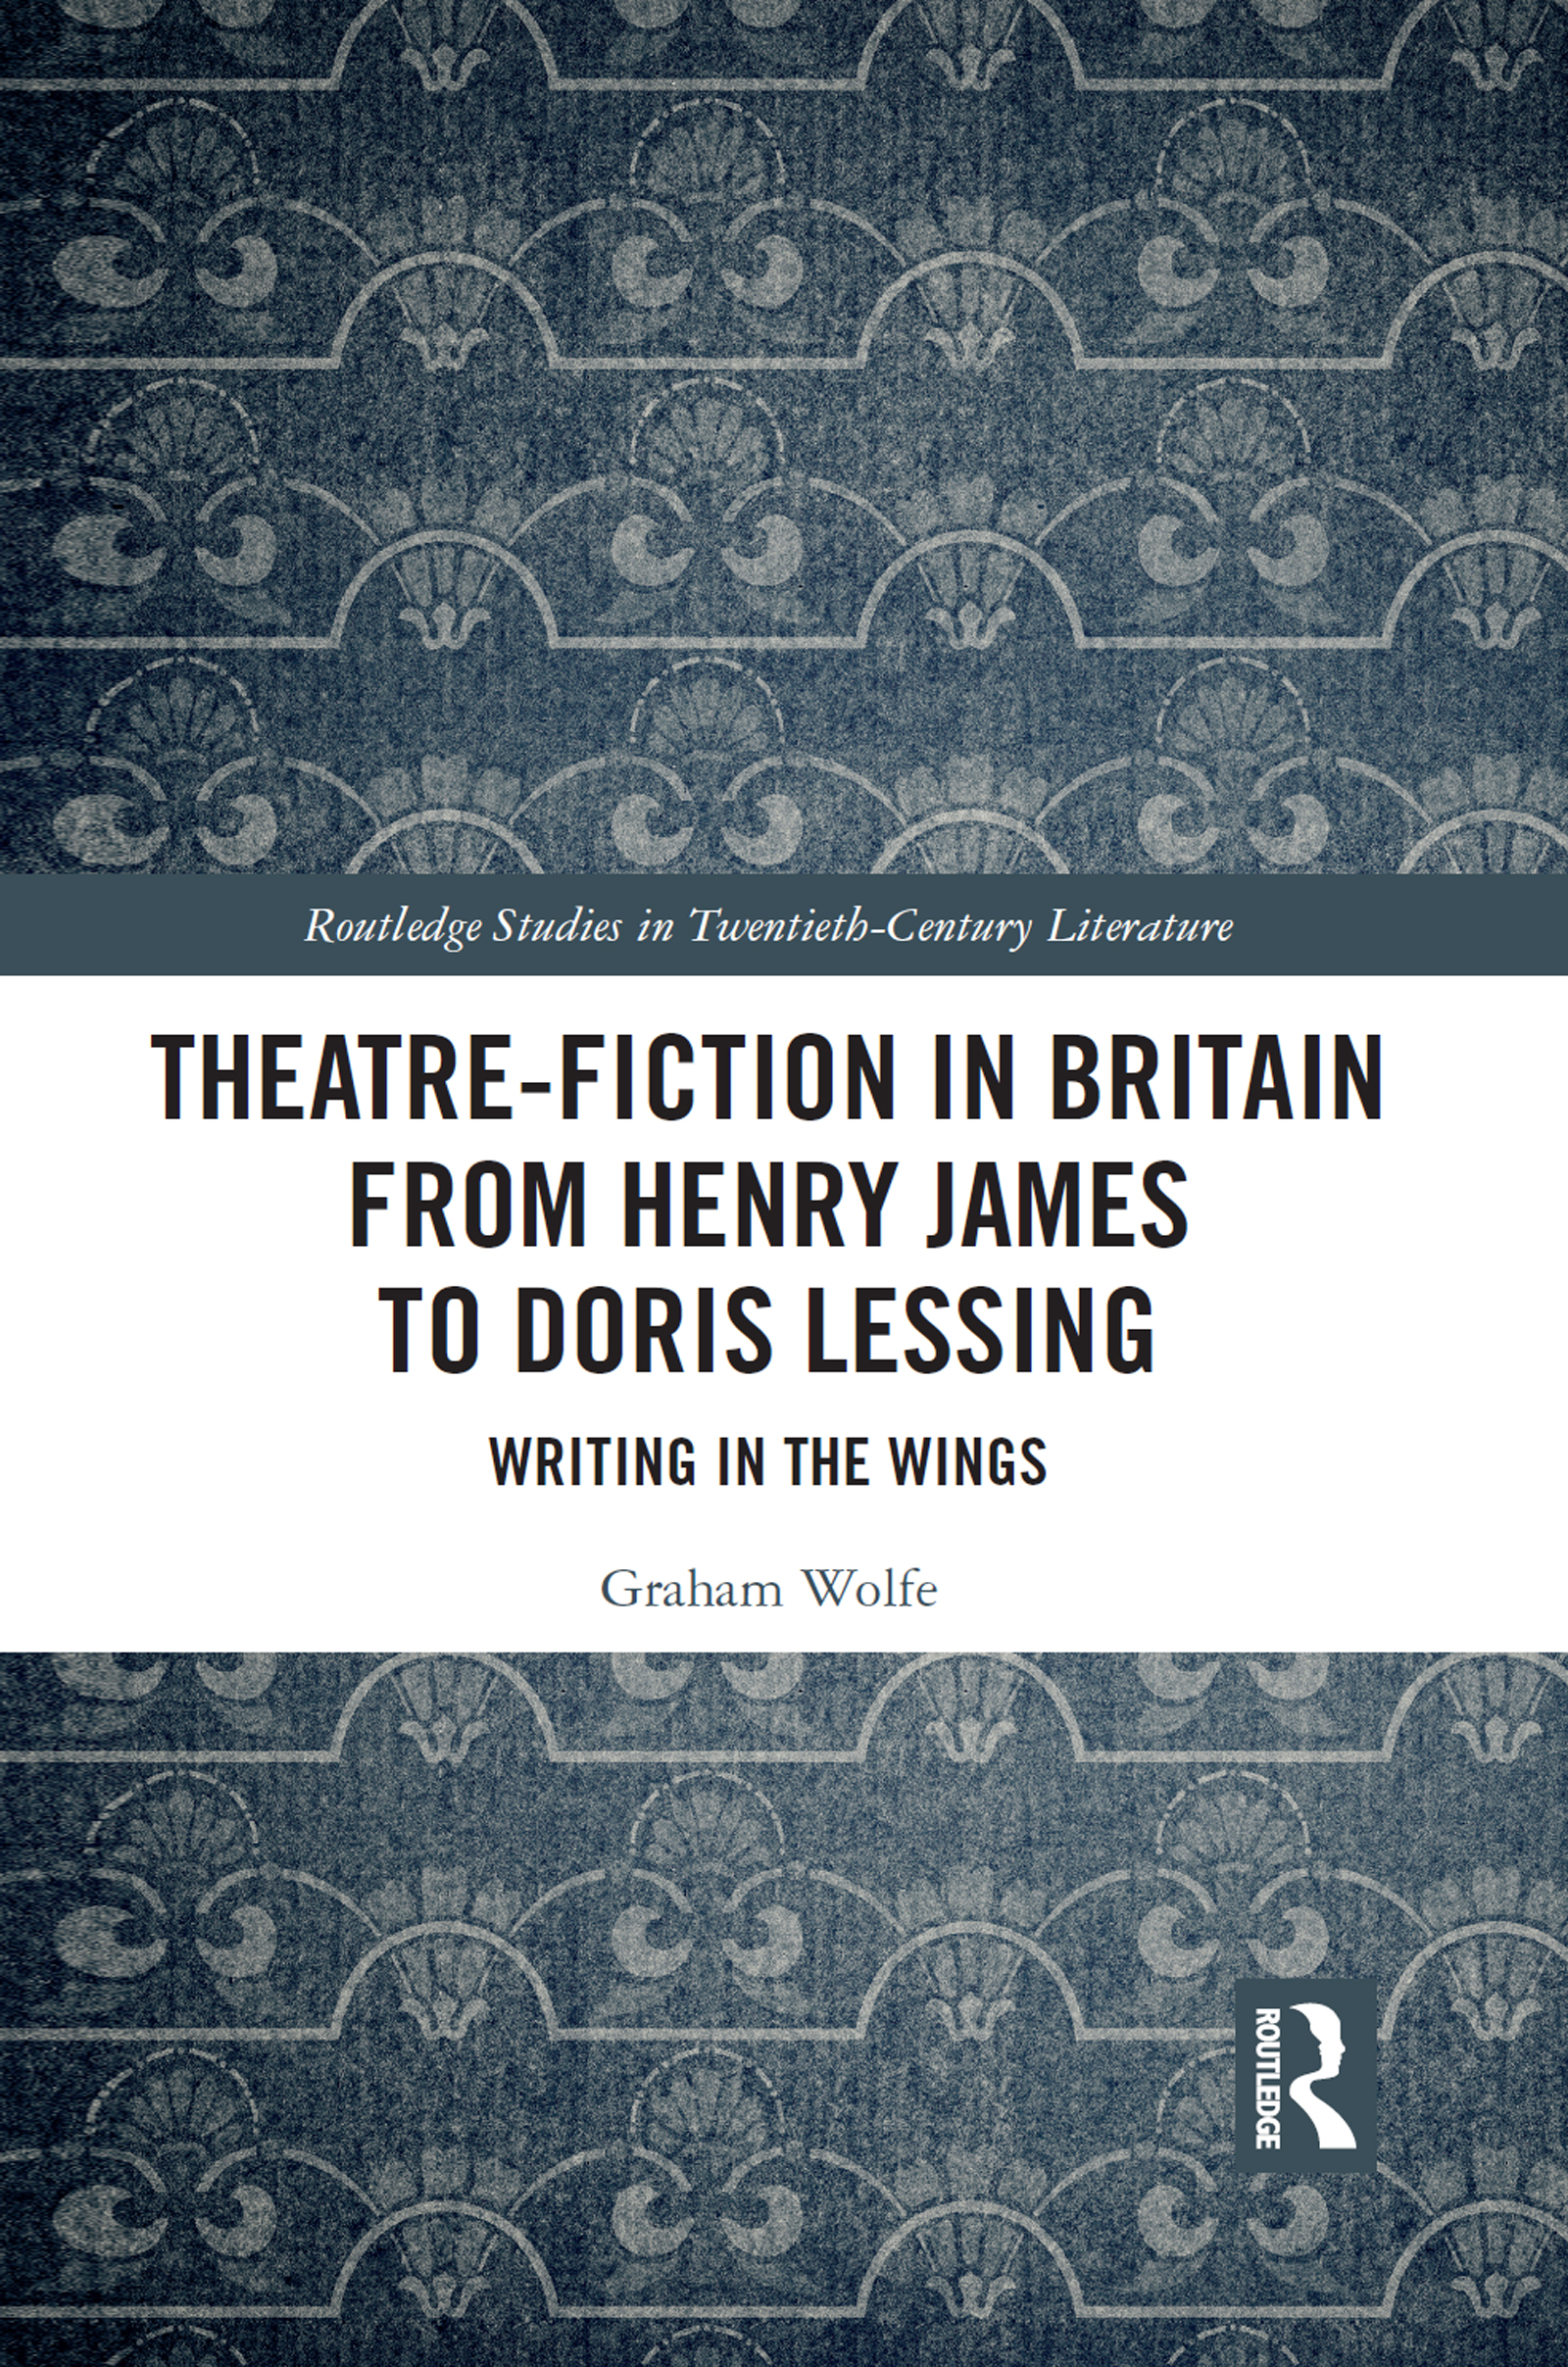 Theatre-Fiction in Britain from Henry James to Doris Lessing